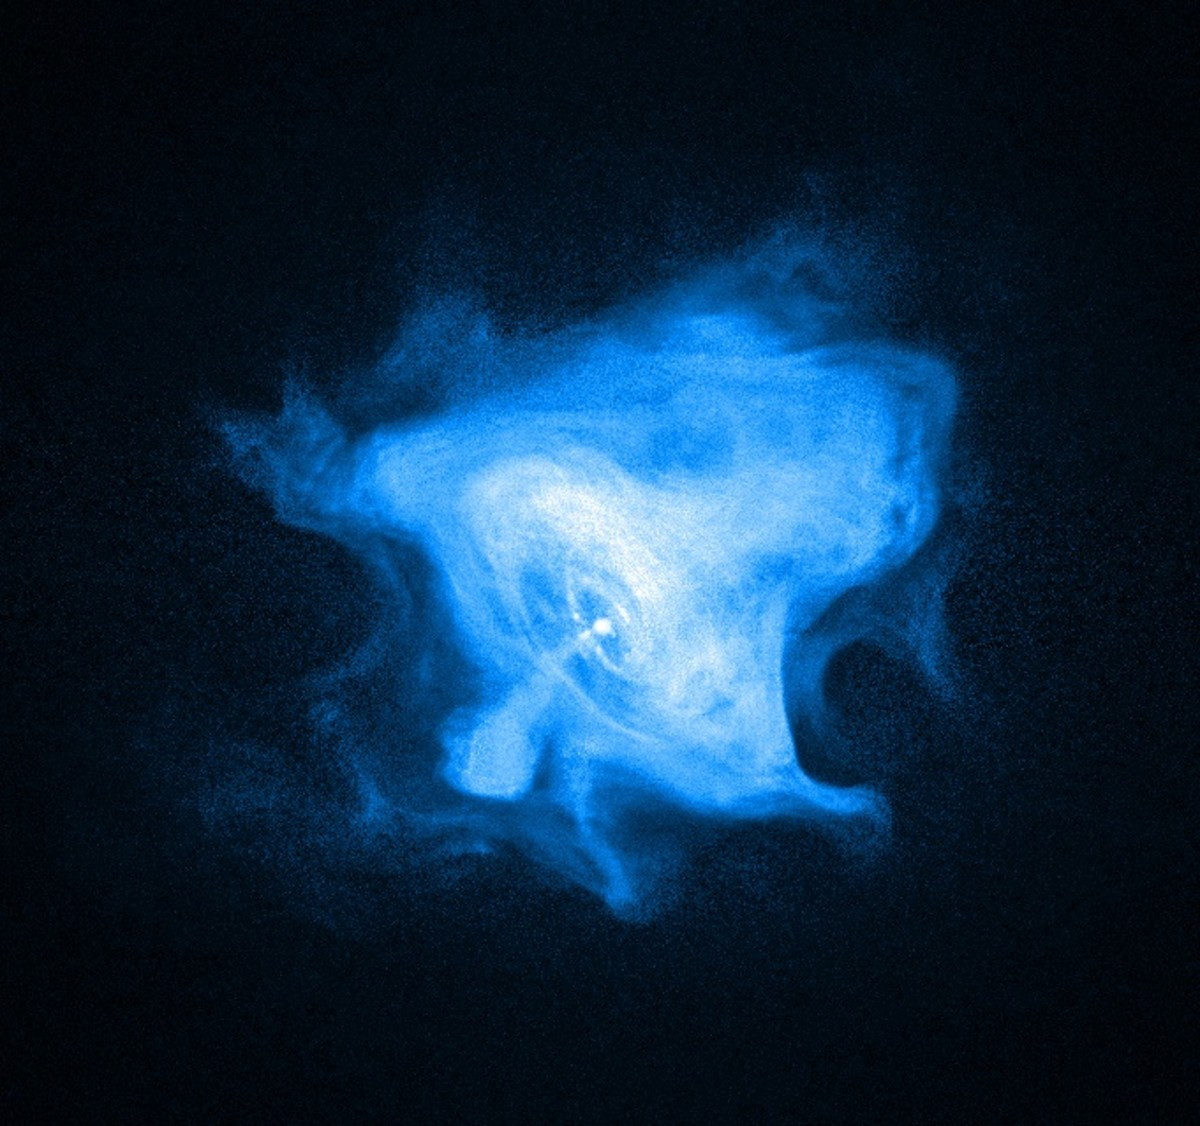 The Crab pulsar; a neutron star at the heart of the Crab Nebula (central bright dot) .